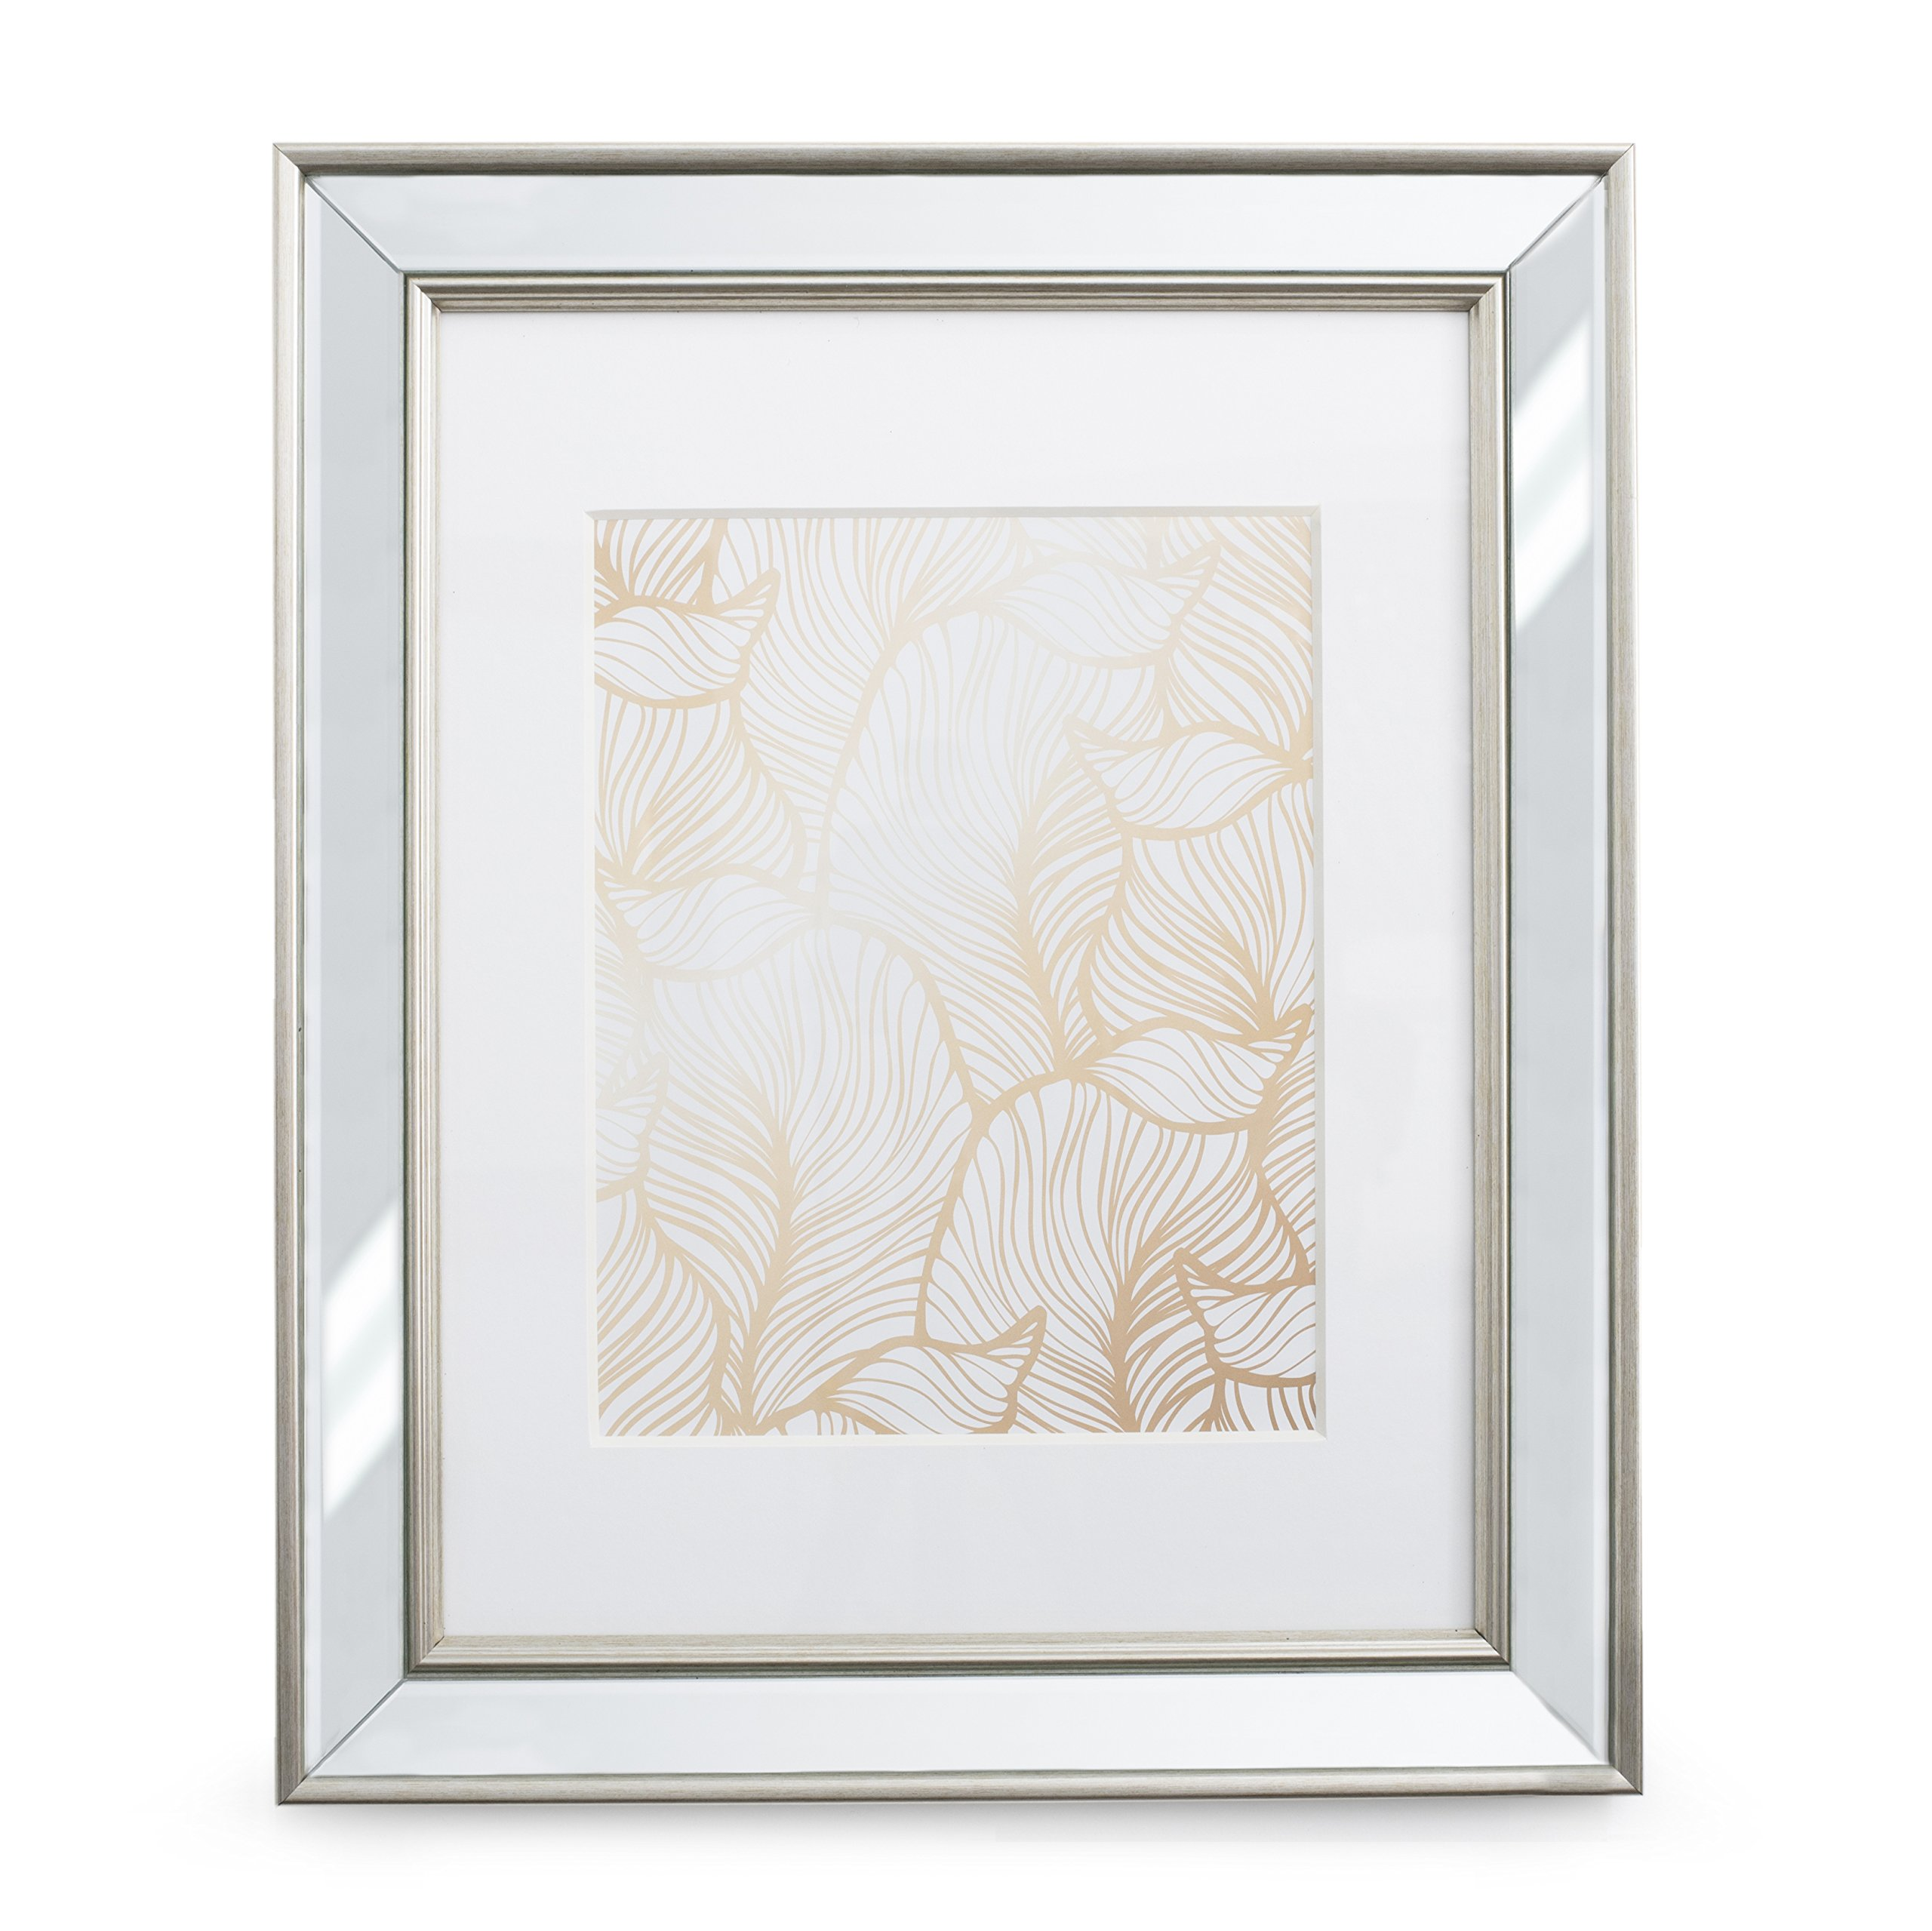 8x10 Mirrored Picture Frame Matted - Made to Display Pictures 8x10 with Mat or 5x7 Without Mat, Hang or Tabletop Display Frames by EcoHome